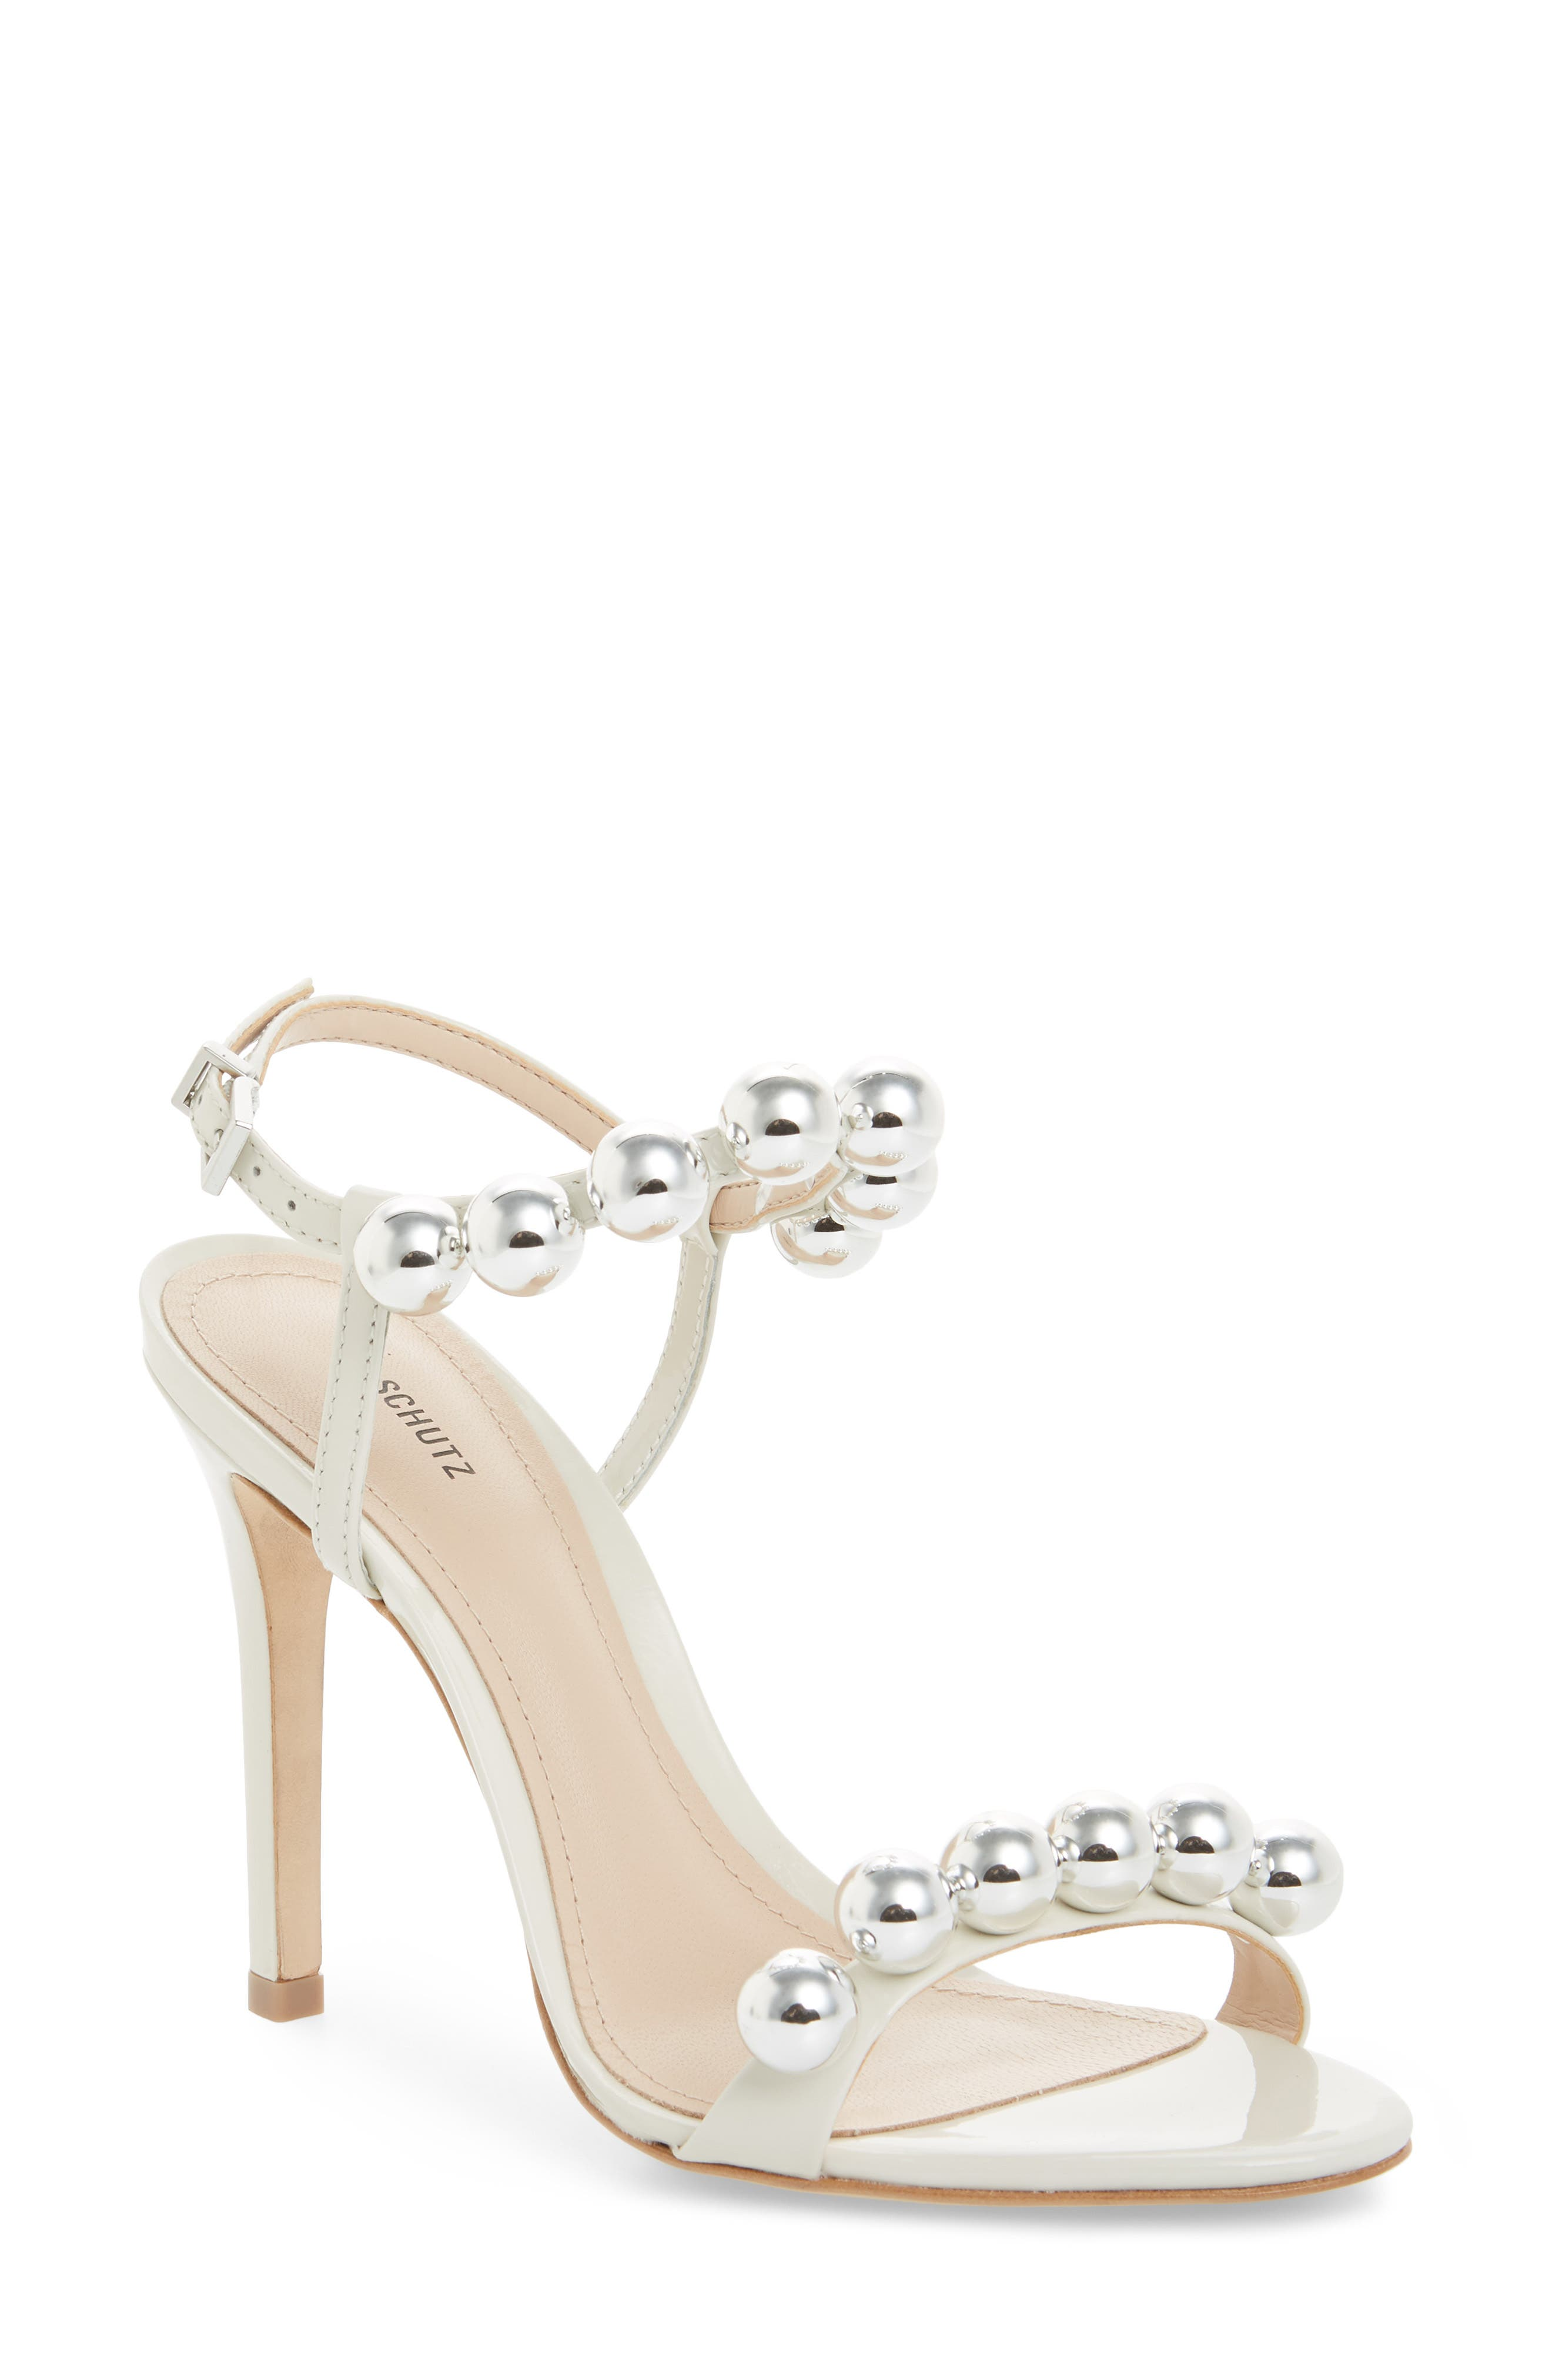 Nellie Sandal, Pearl Leather